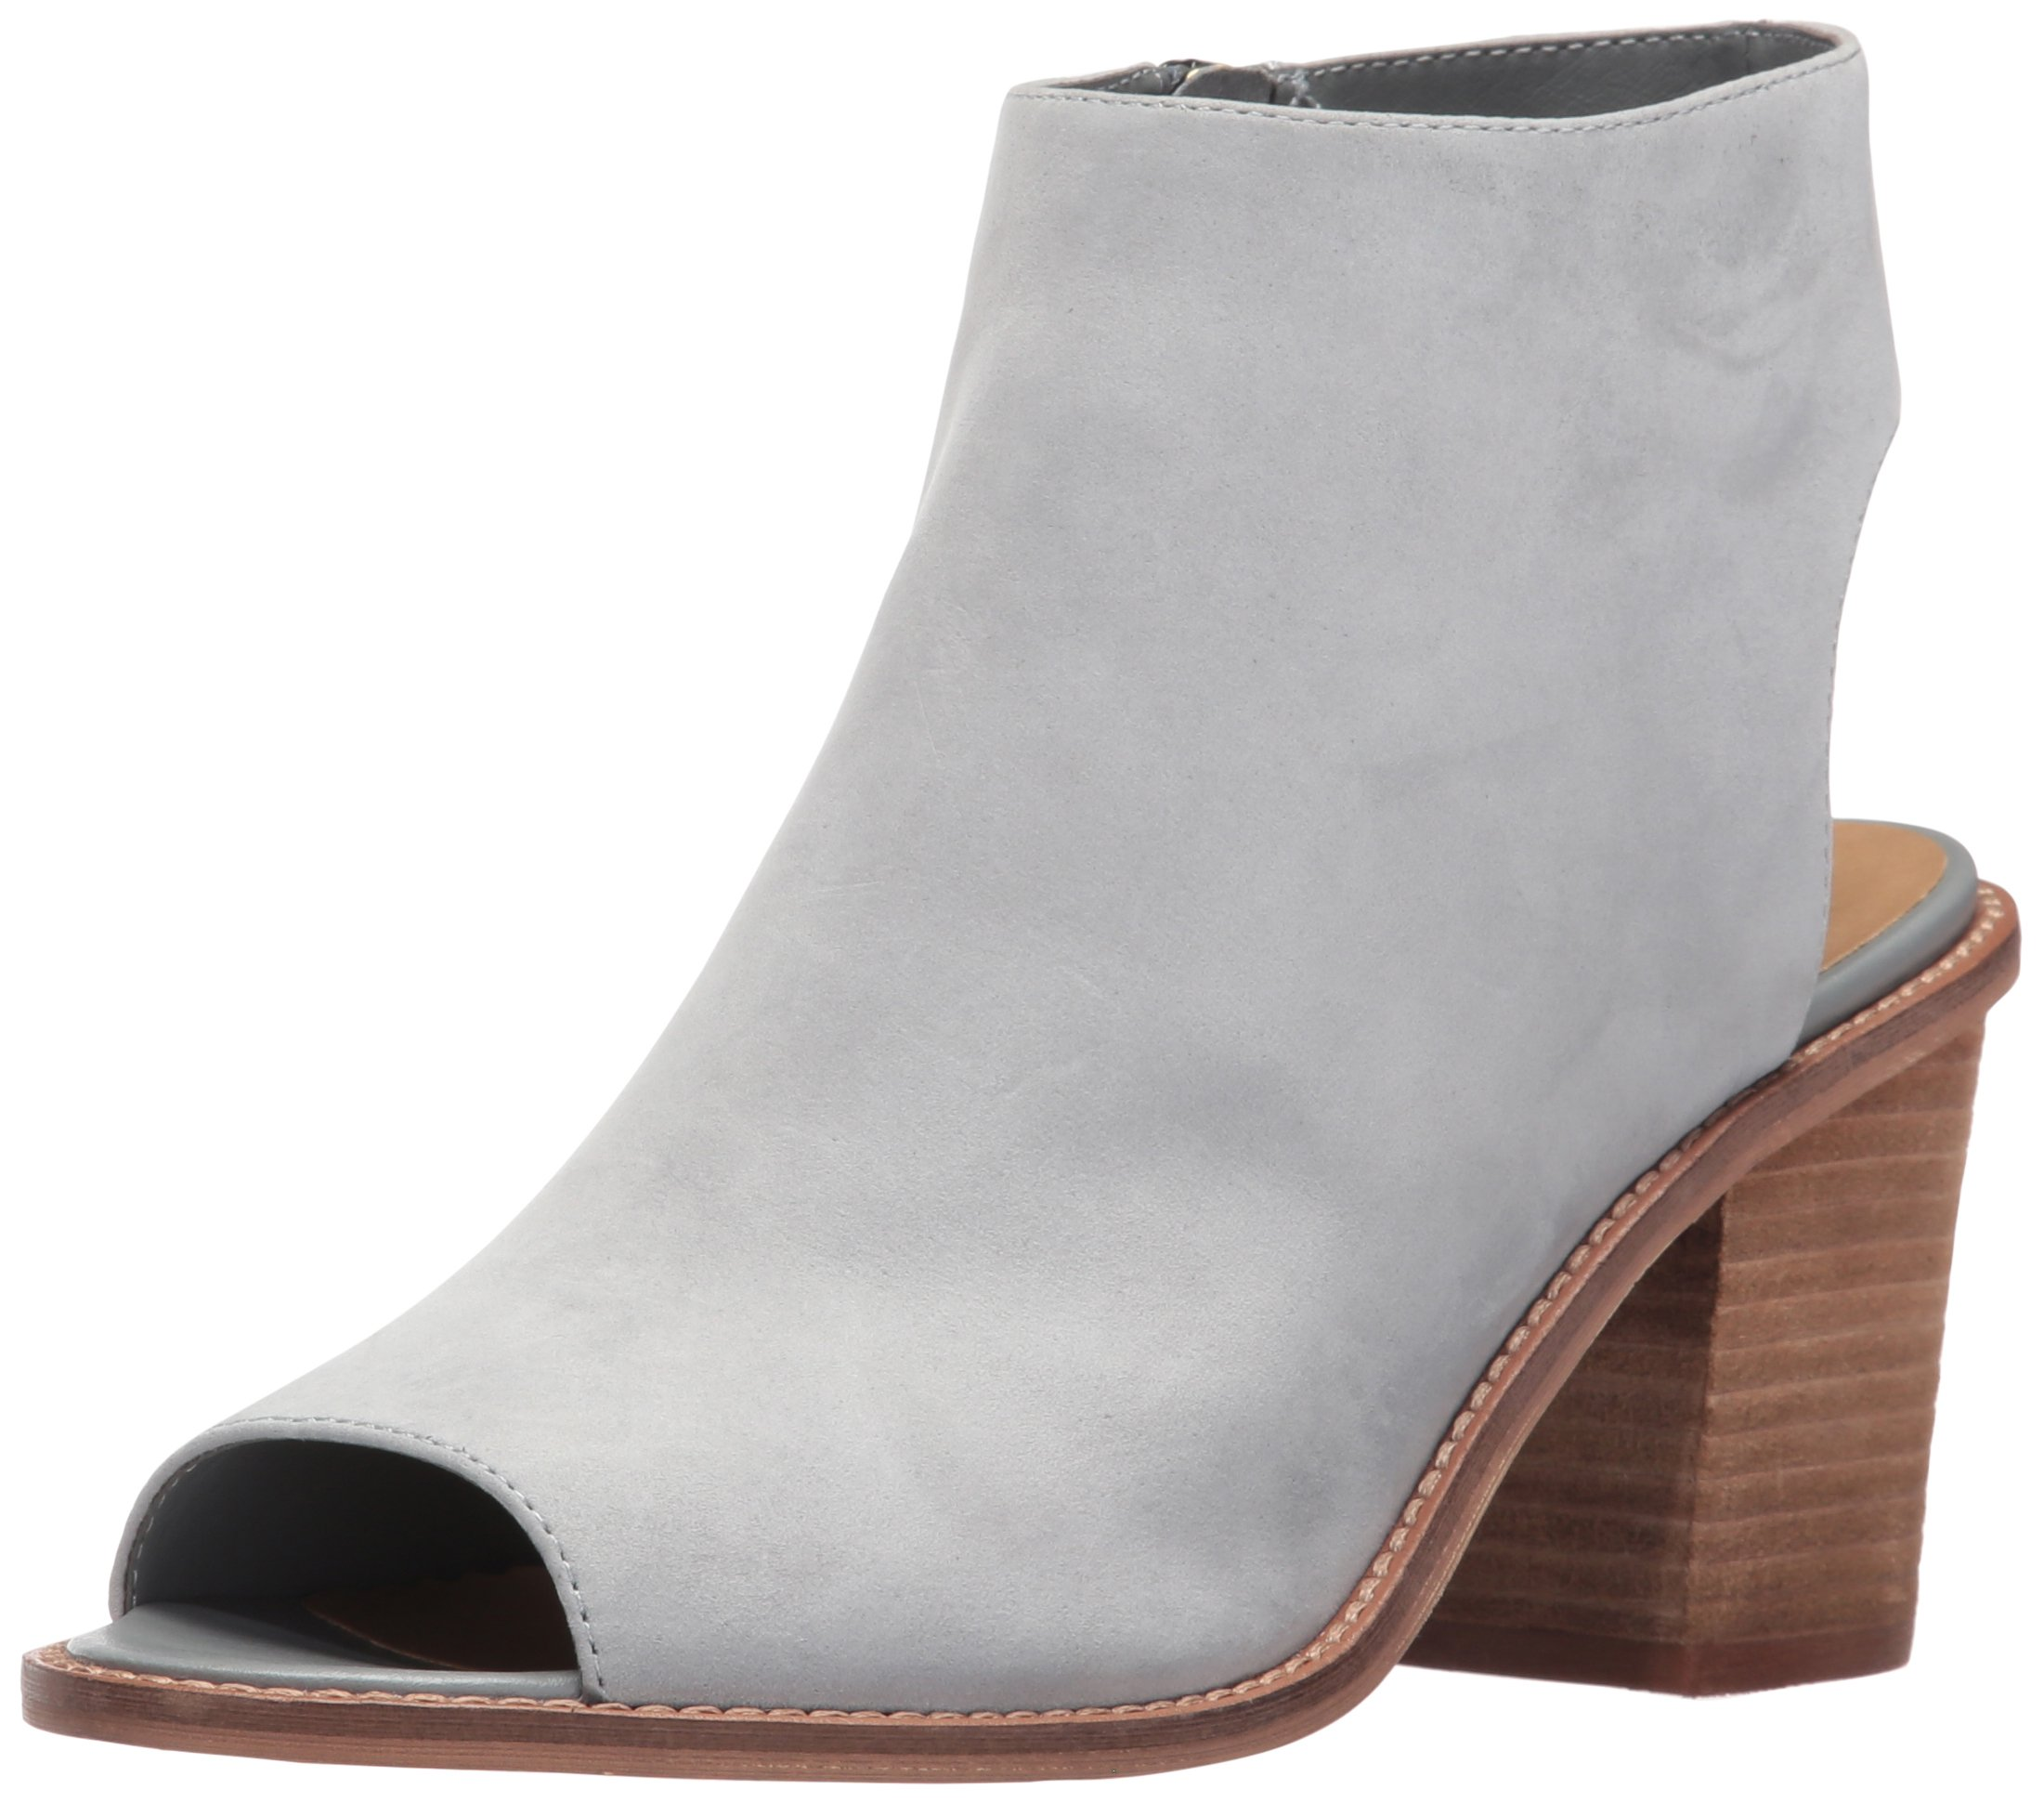 Chinese Laundry Women's Calvin Ankle Bootie, Chambray Leather, 10 M US